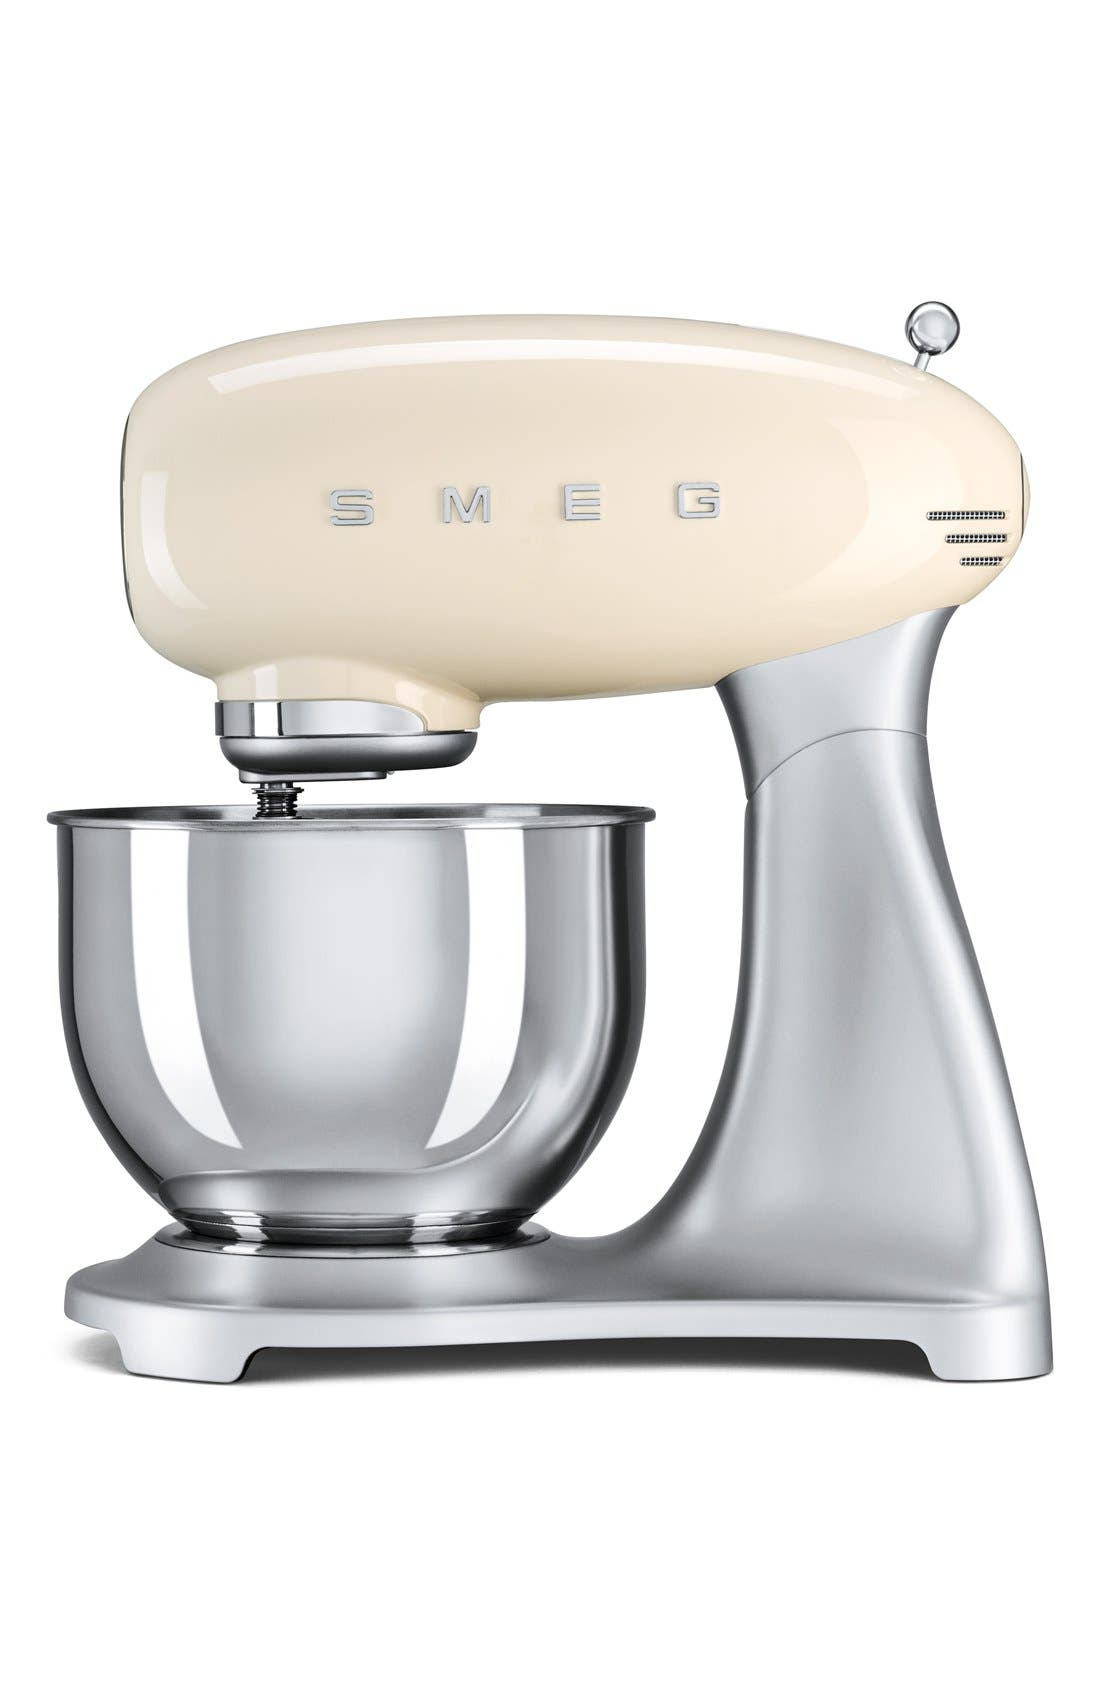 Main Image - smeg '50s Retro Style Aesthetic' Five Quart Stand Mixer